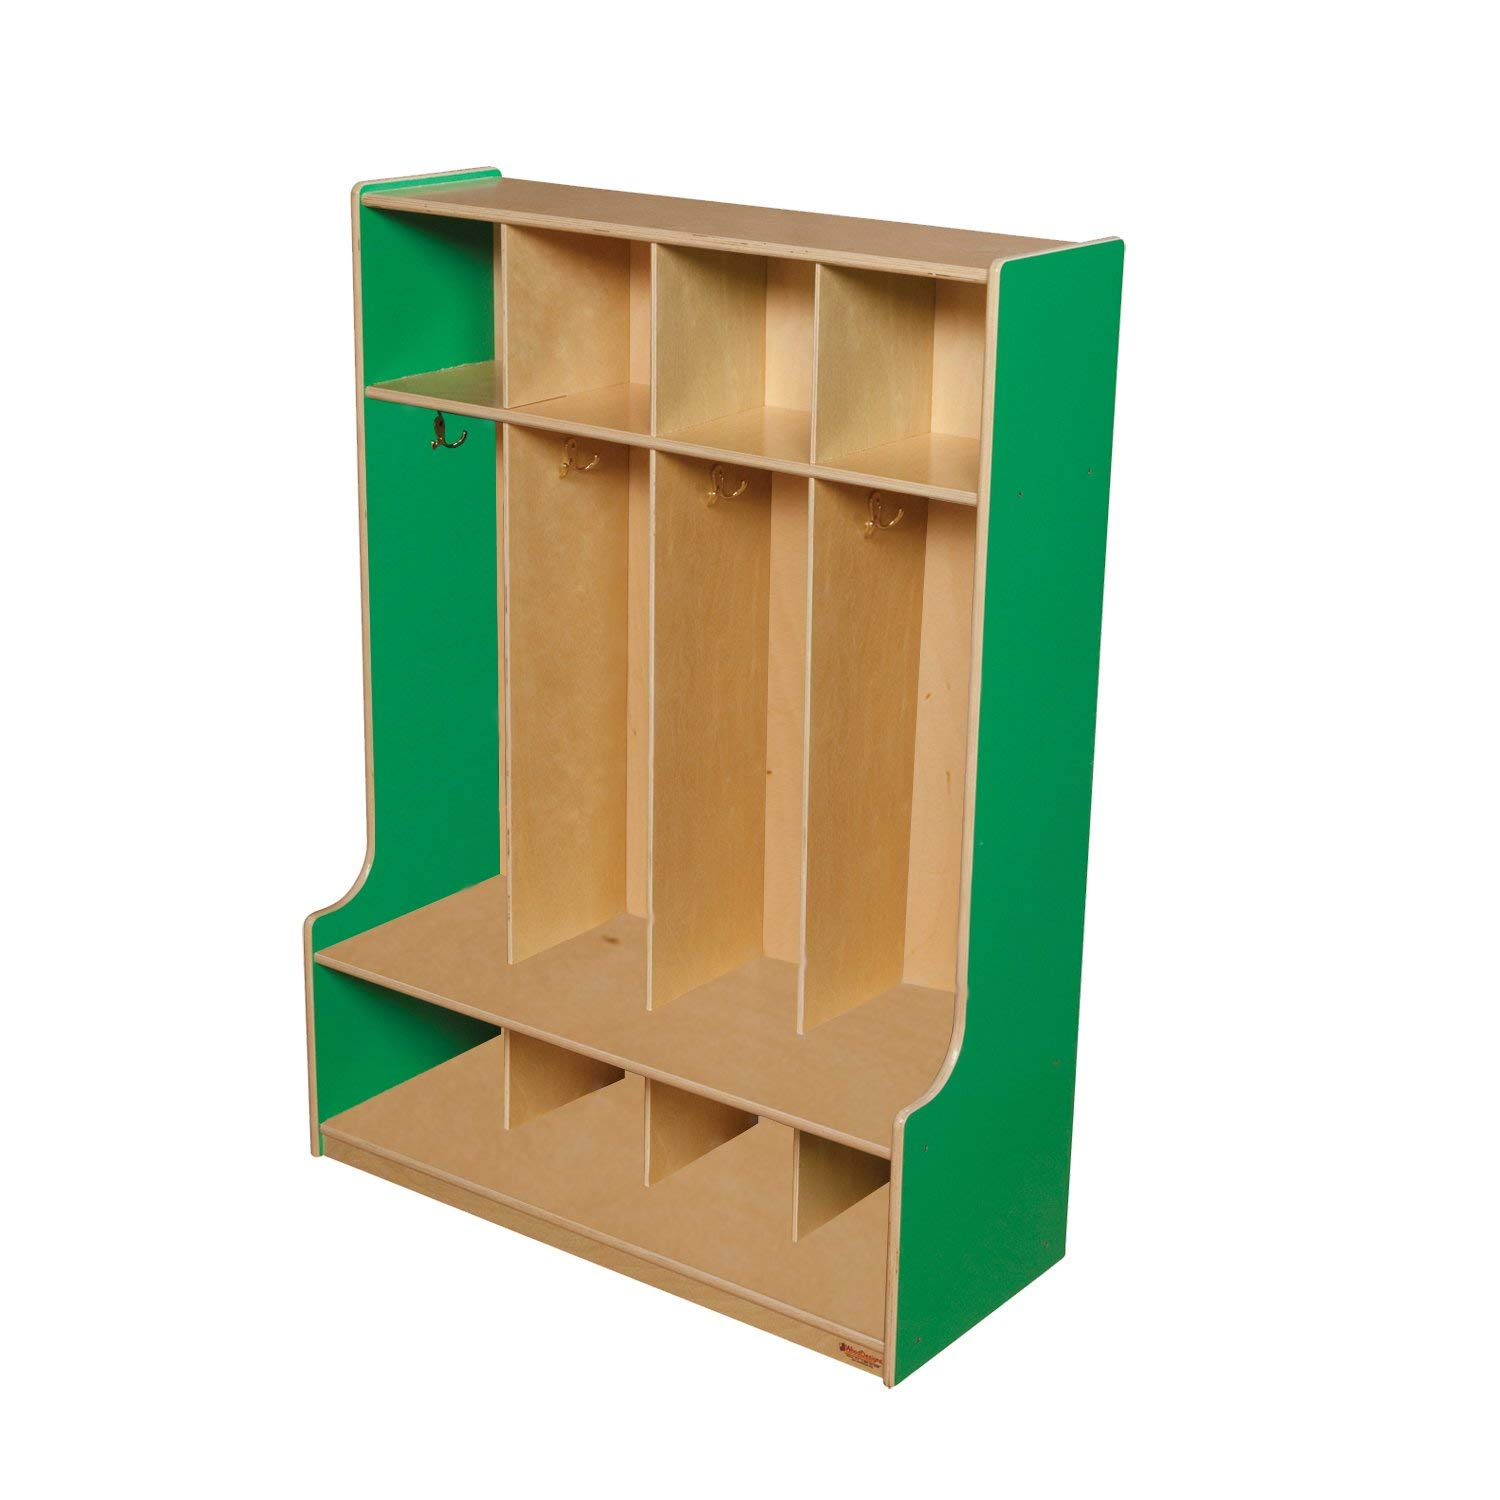 "Wood Designs 51004G Green Apple 4 Section Seat Locker, 49"" Height, 18"" Width, 51.5"" Length"